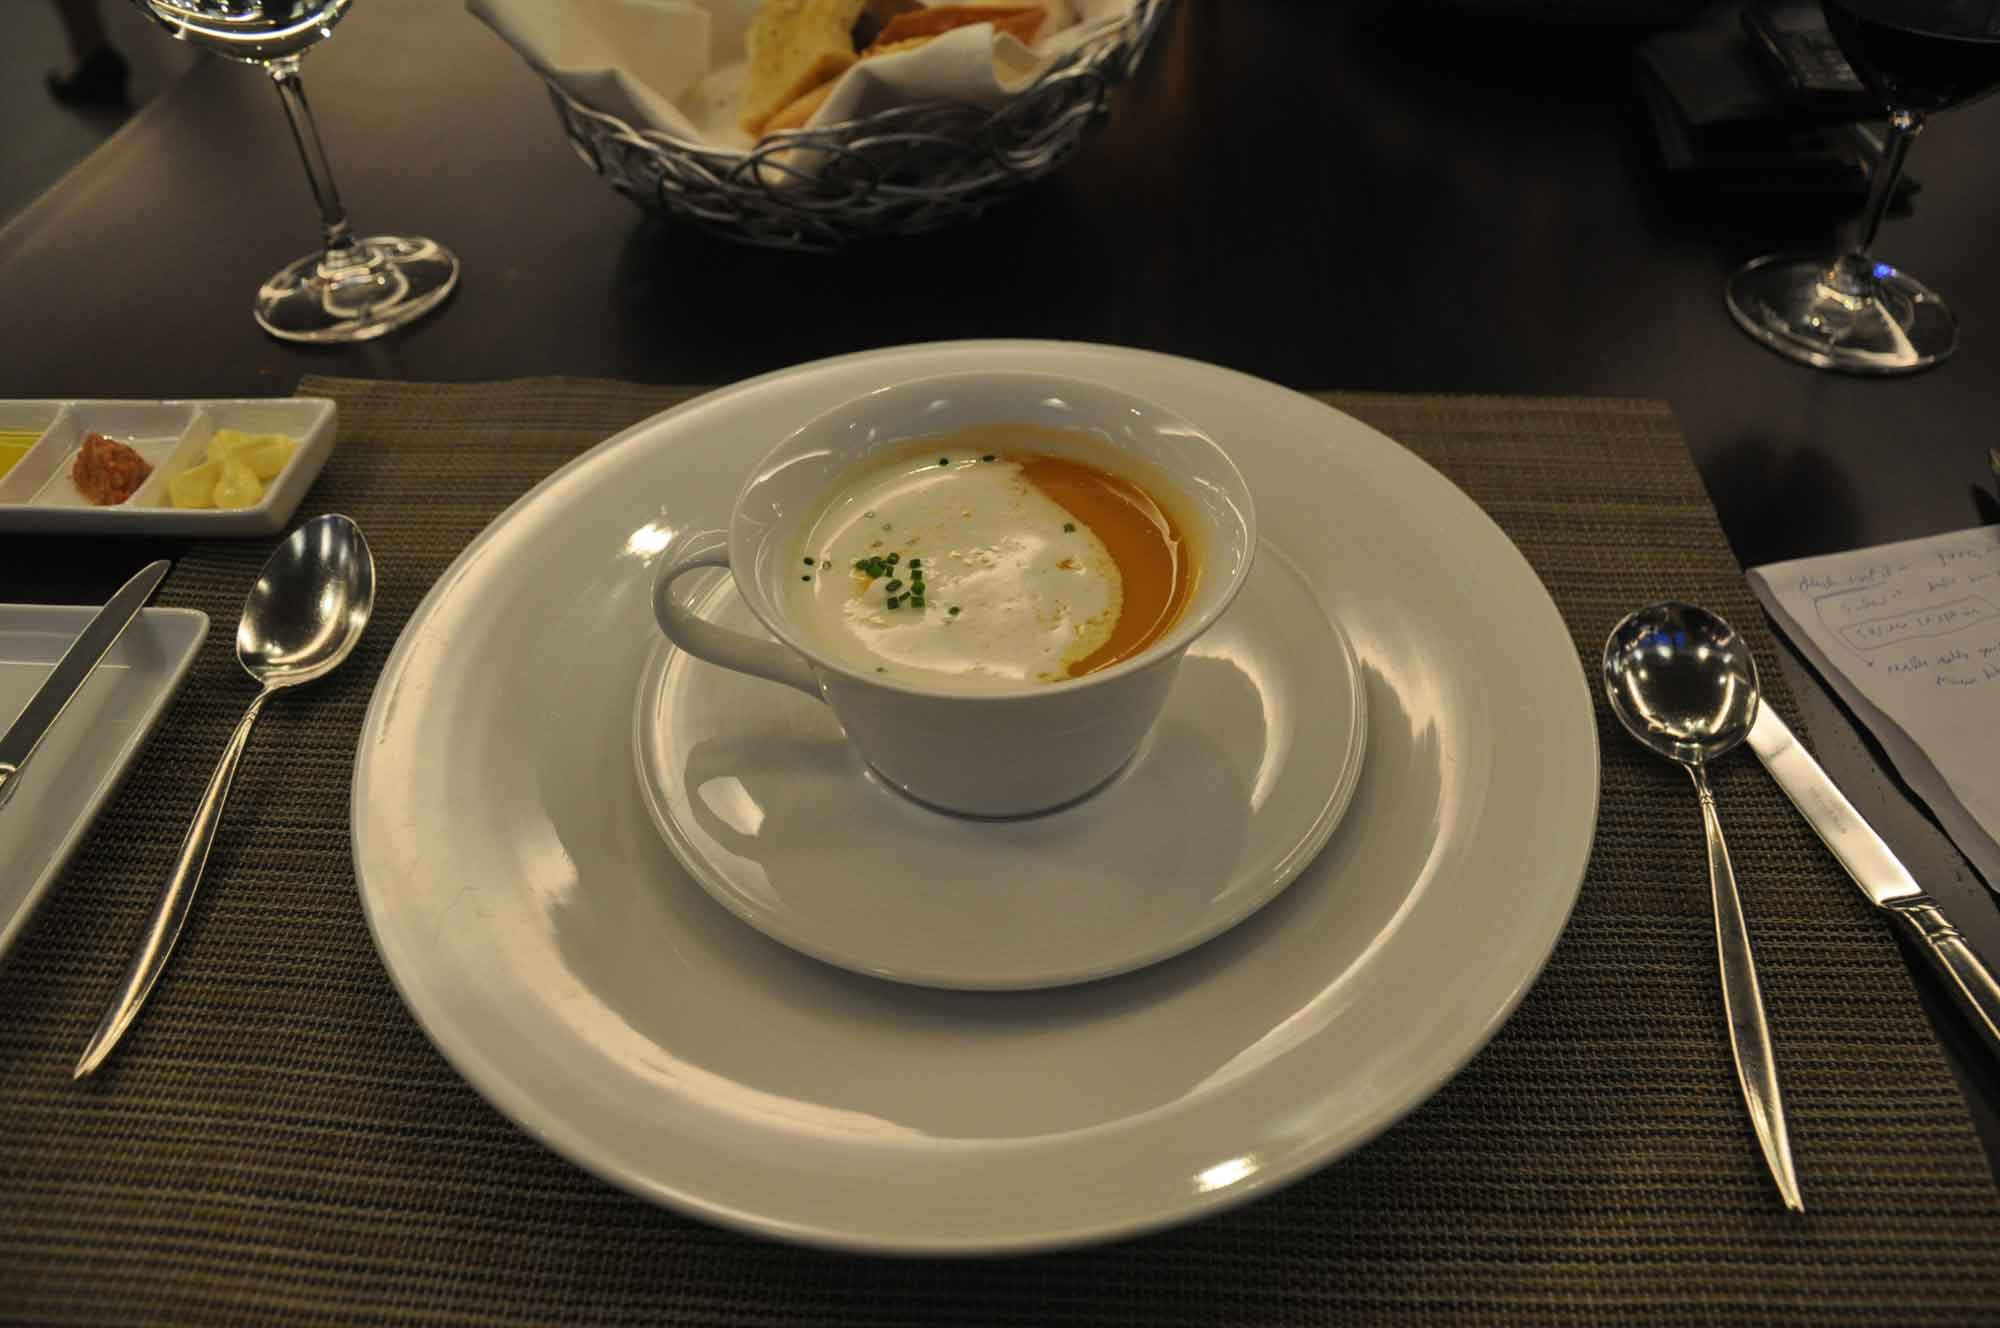 IFT Educational Restaurant lobster cappuccino soup